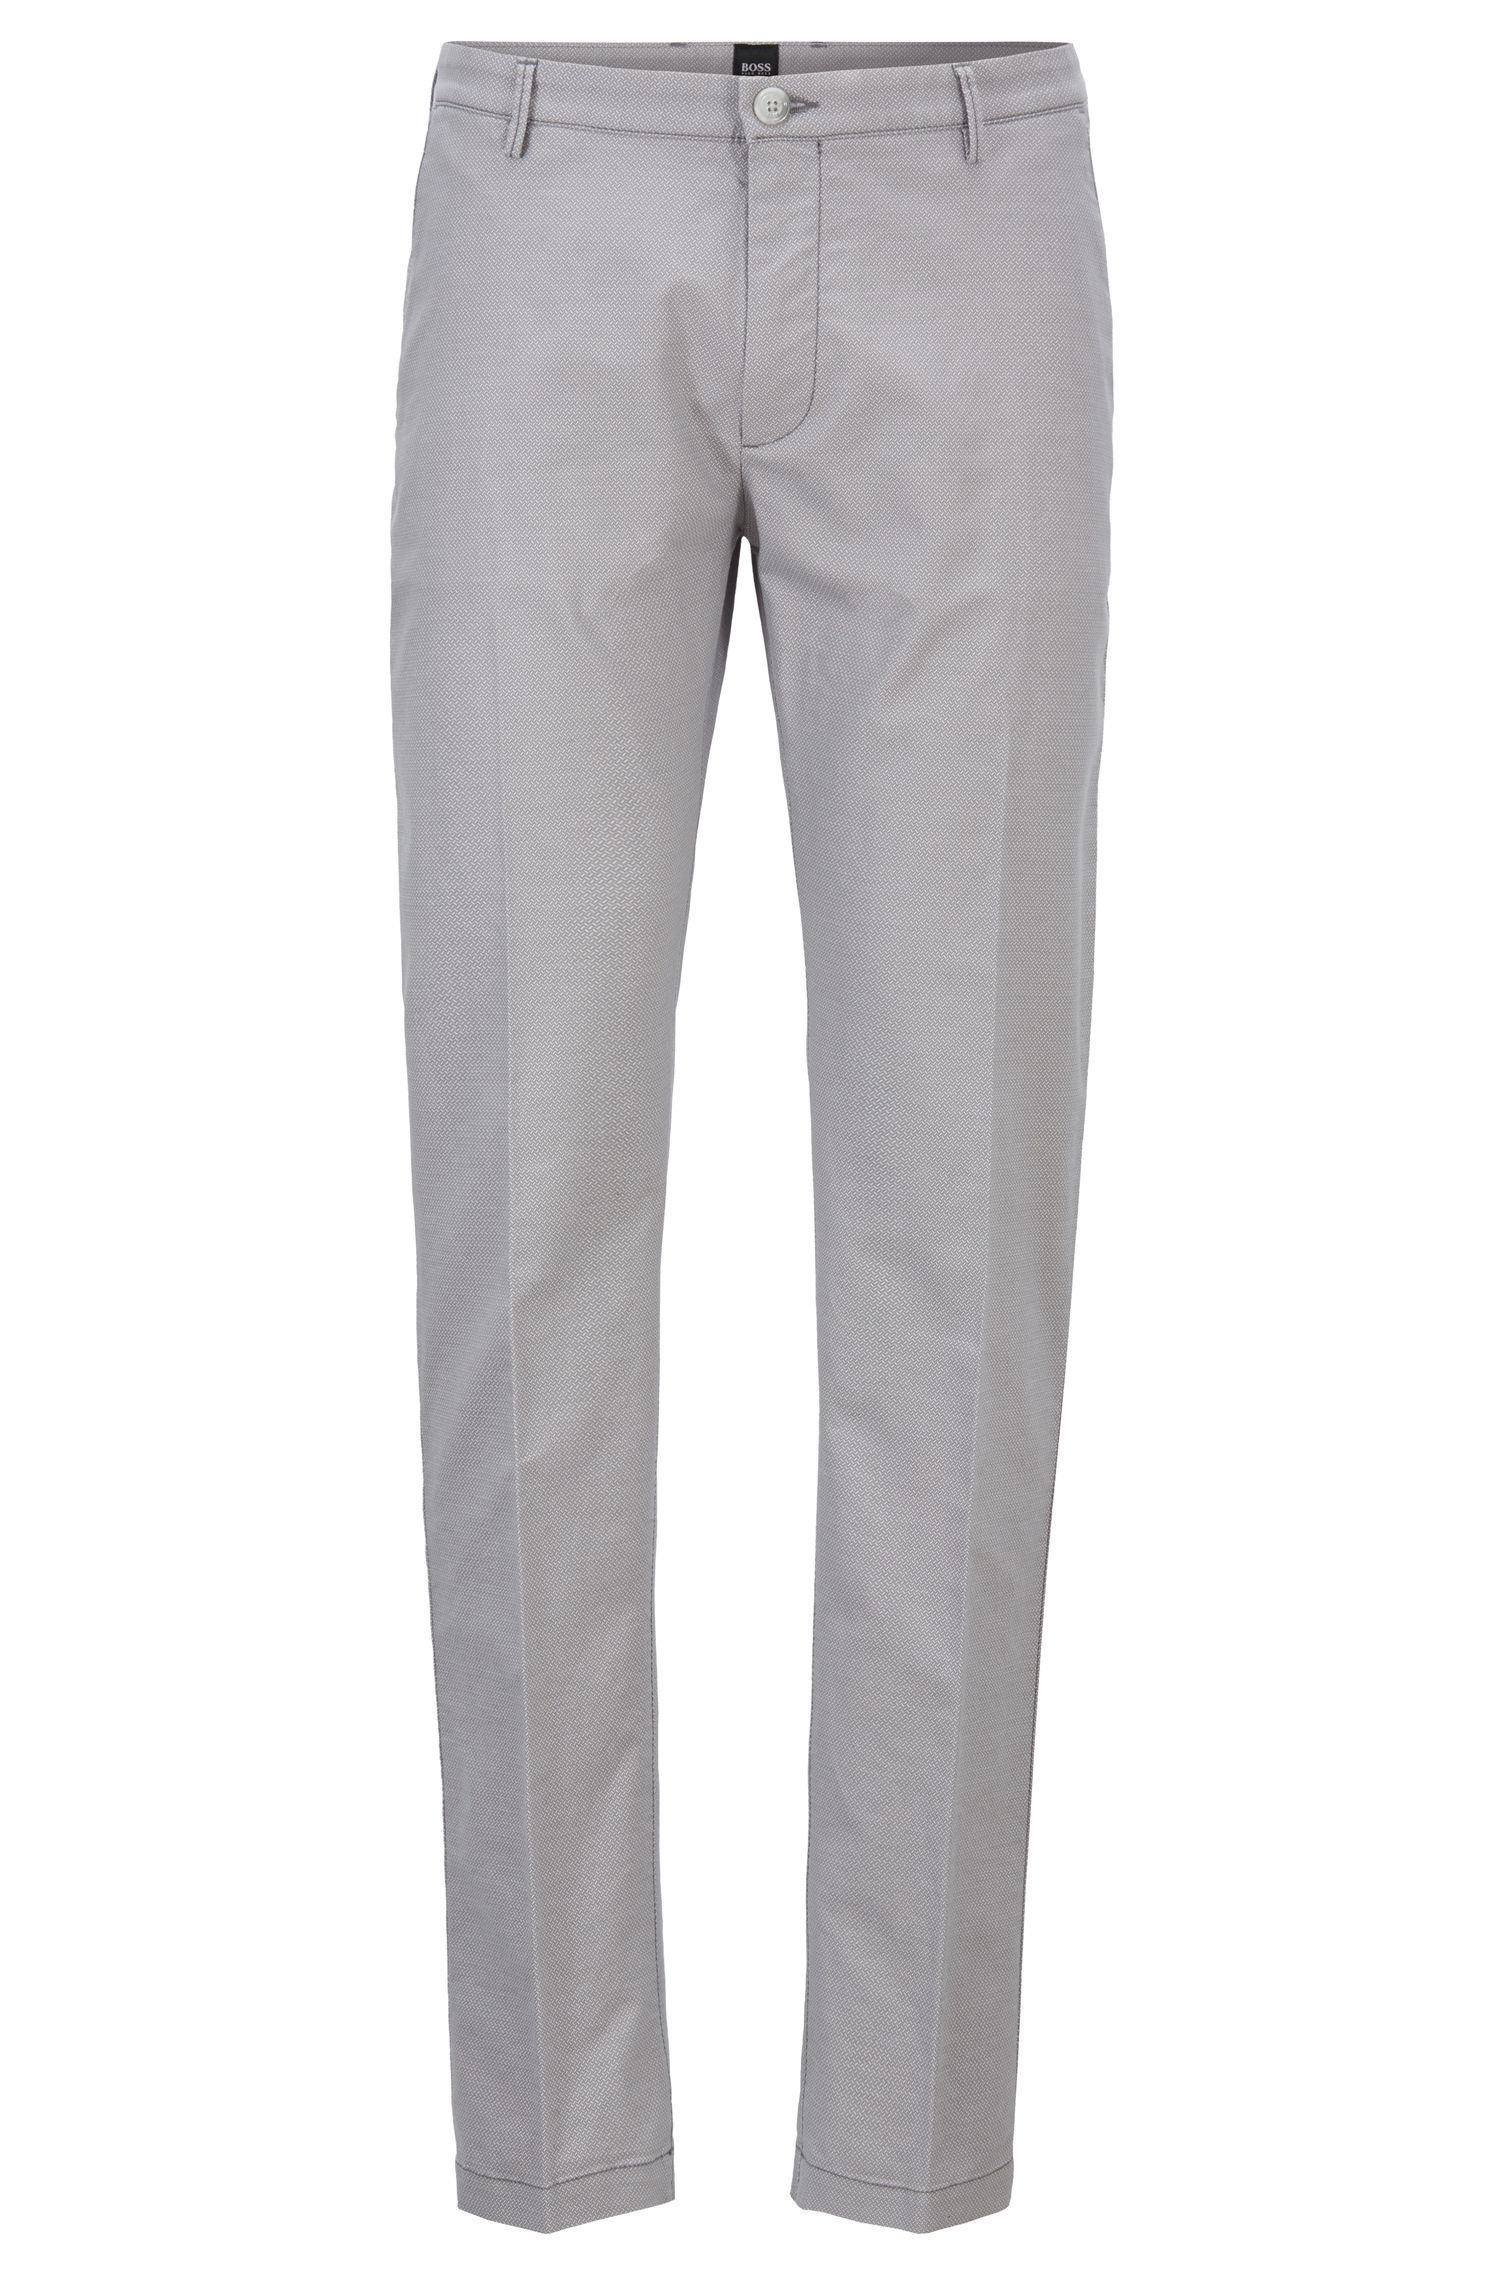 Chino Slim Fit en coton stretch à micro motif, Gris chiné